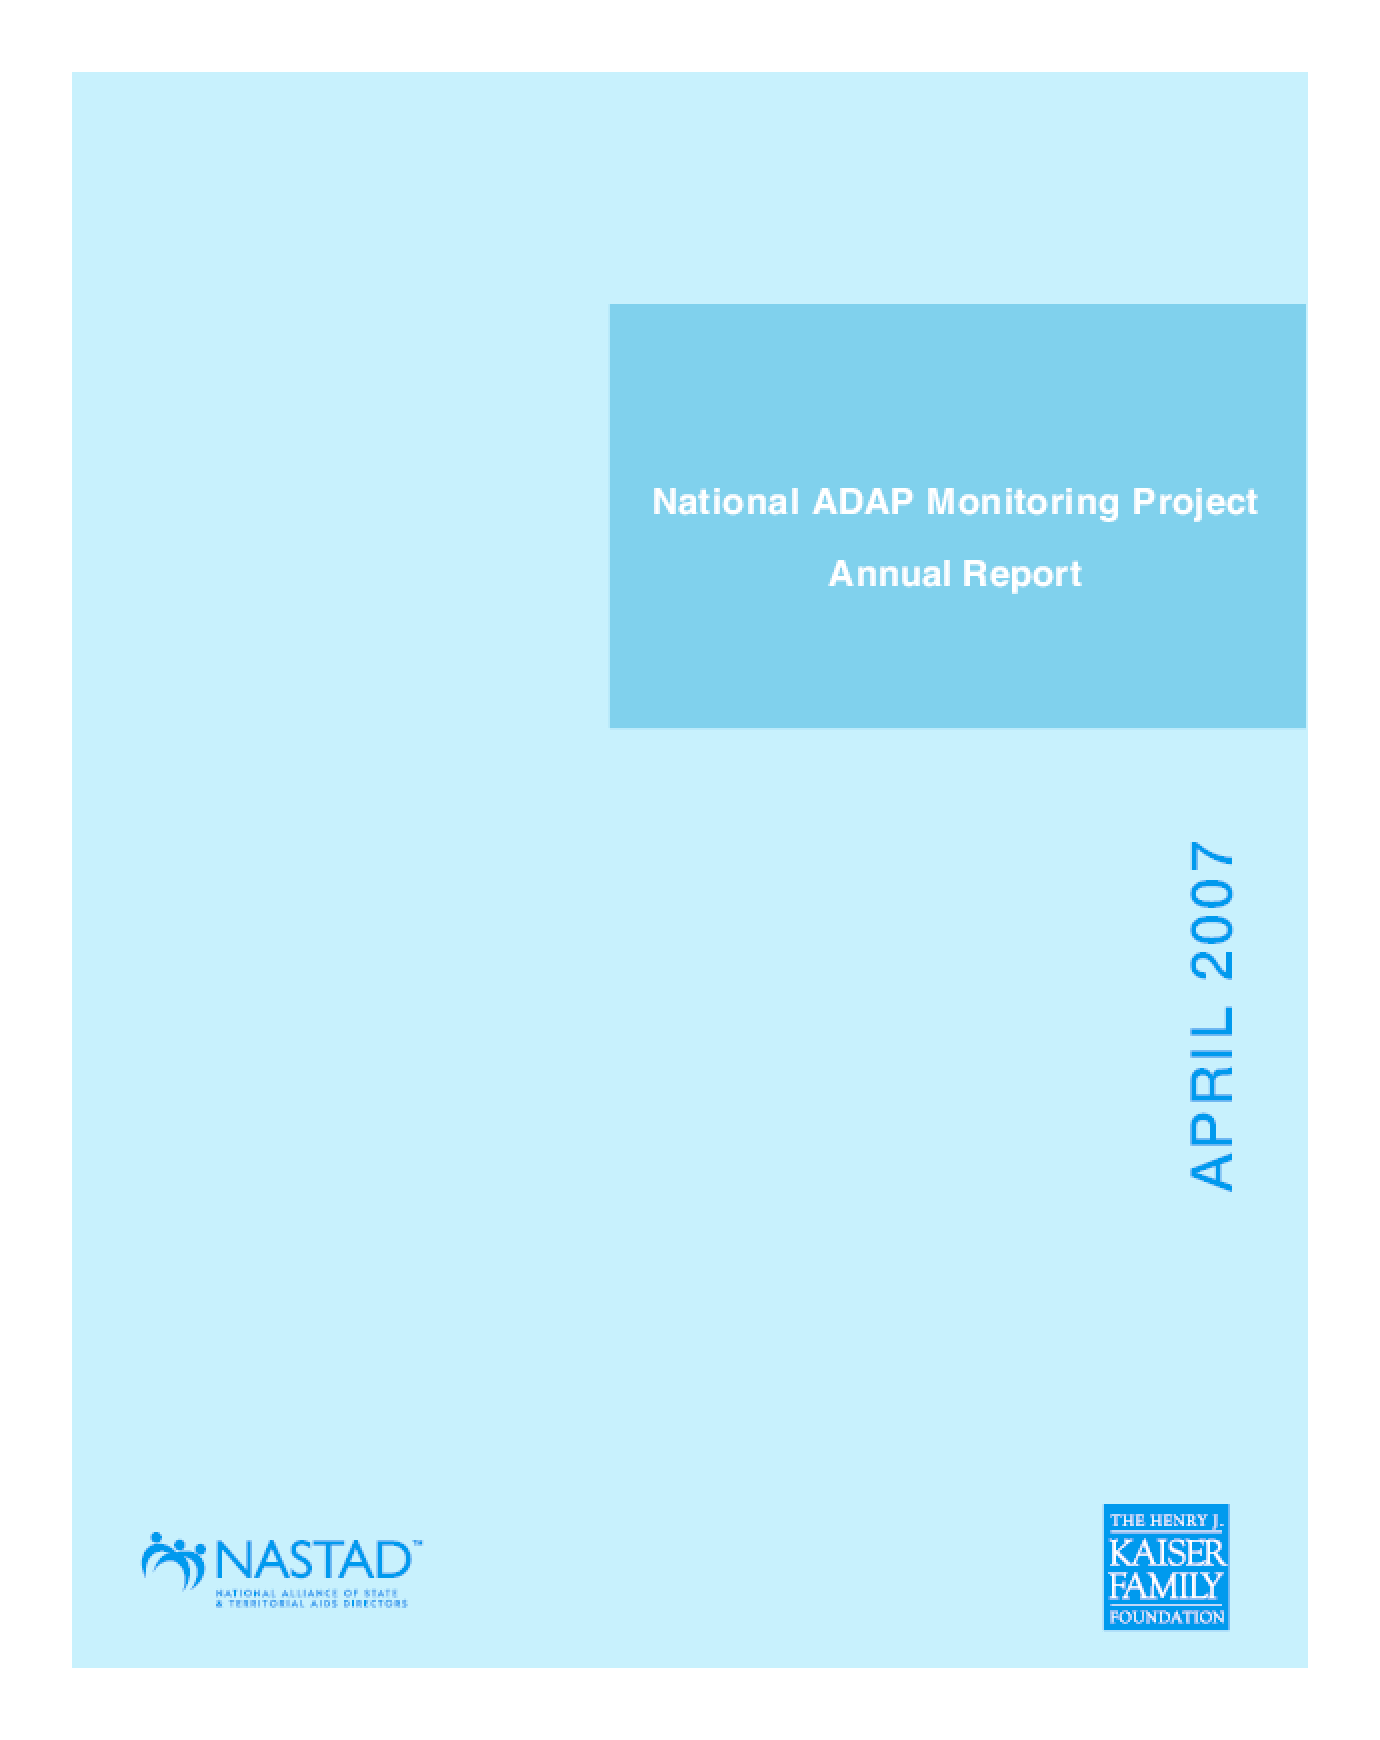 Henry J. Kaiser Family Foundation - National ADAP Monitoring Project Annual Report 2007